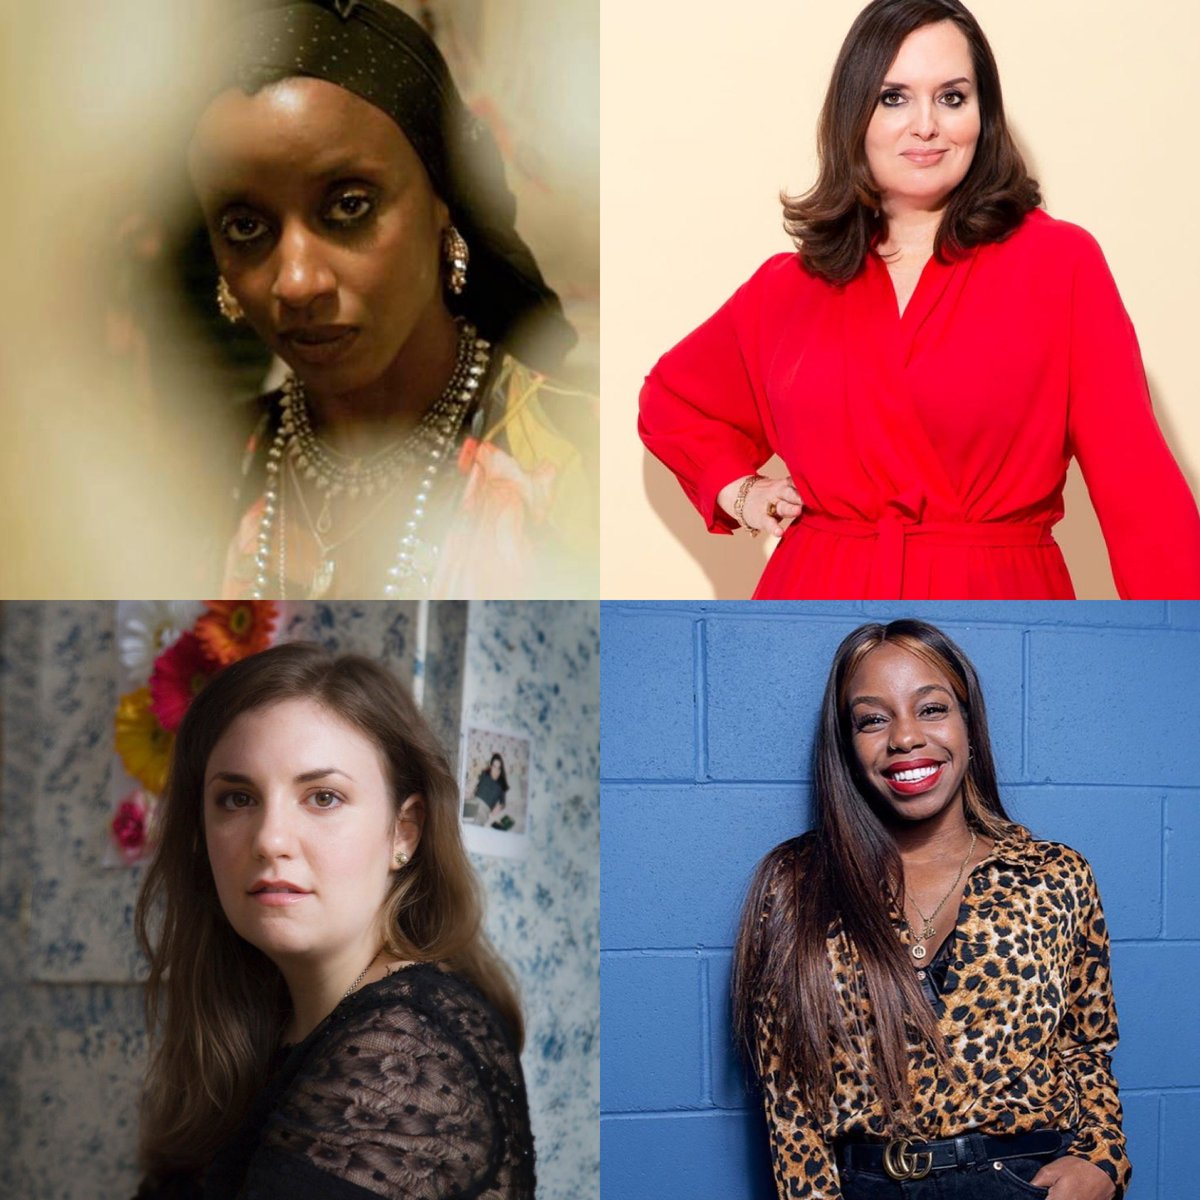 Happy #InternationalWomensDay! We are celebrating our favourite episodes from the past year! Listen to #talkart with creatives speaking about their work including #ZoeBedeaux, #DeborahFrancesWhite @GuiltFemPod, #LenaDunham @lenadunham and #LondonHughes @TheLondonHughespic.twitter.com/jXMFcPCz0W